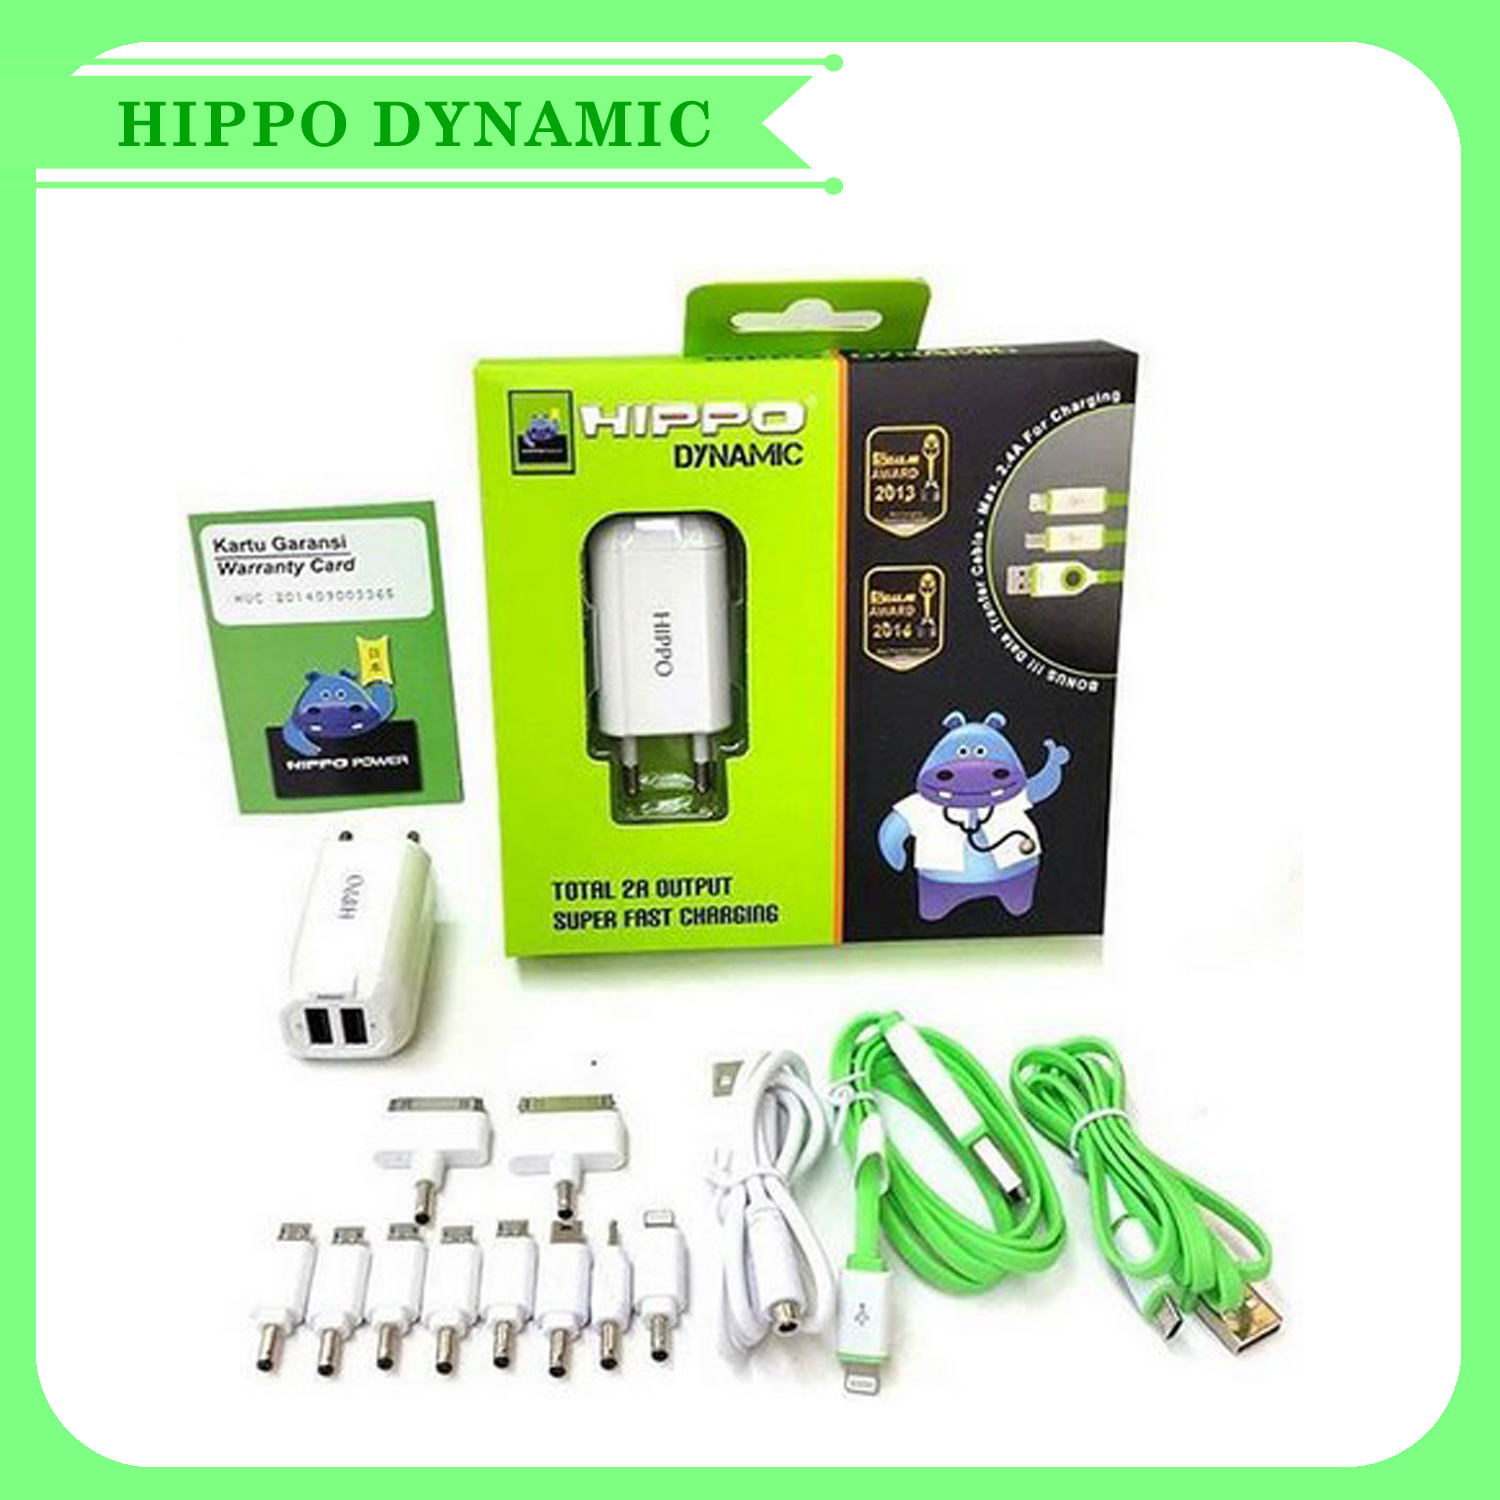 Charger Hippo Dynamic Original | Hippo Dynamic